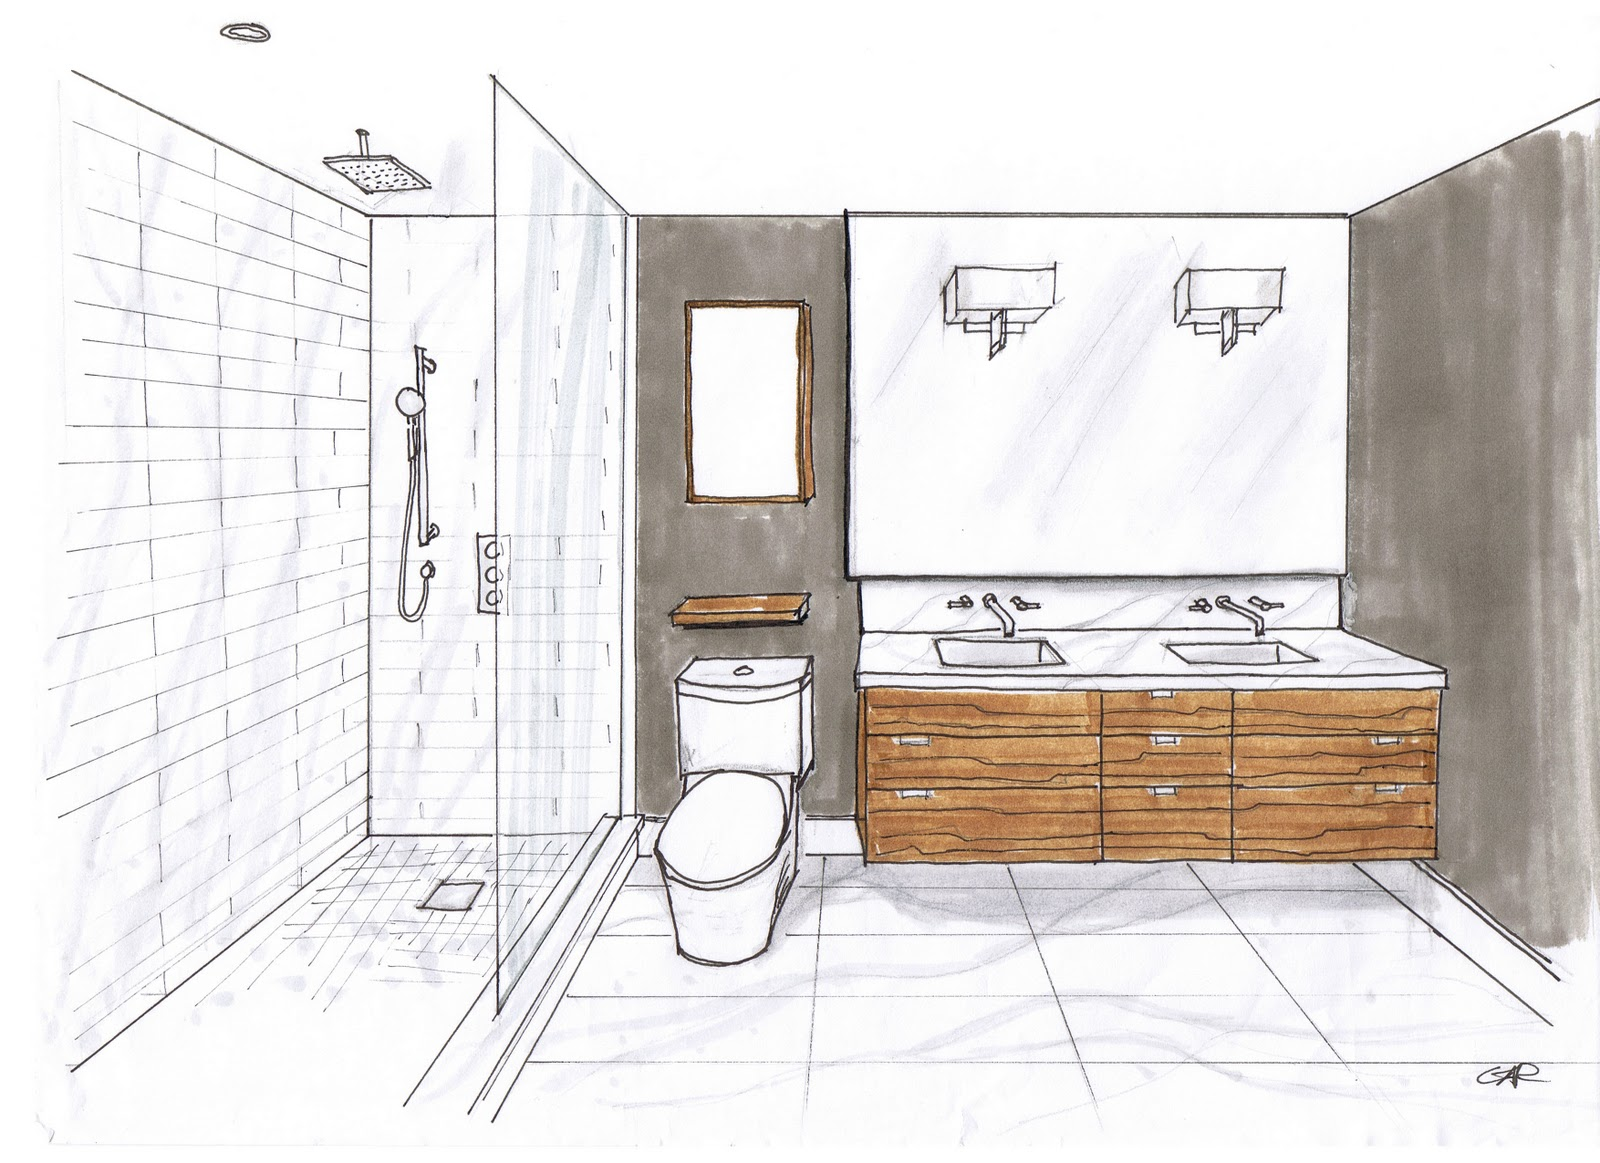 Creed 70 39 s bungalow bathroom designs for Interior design layout drawing